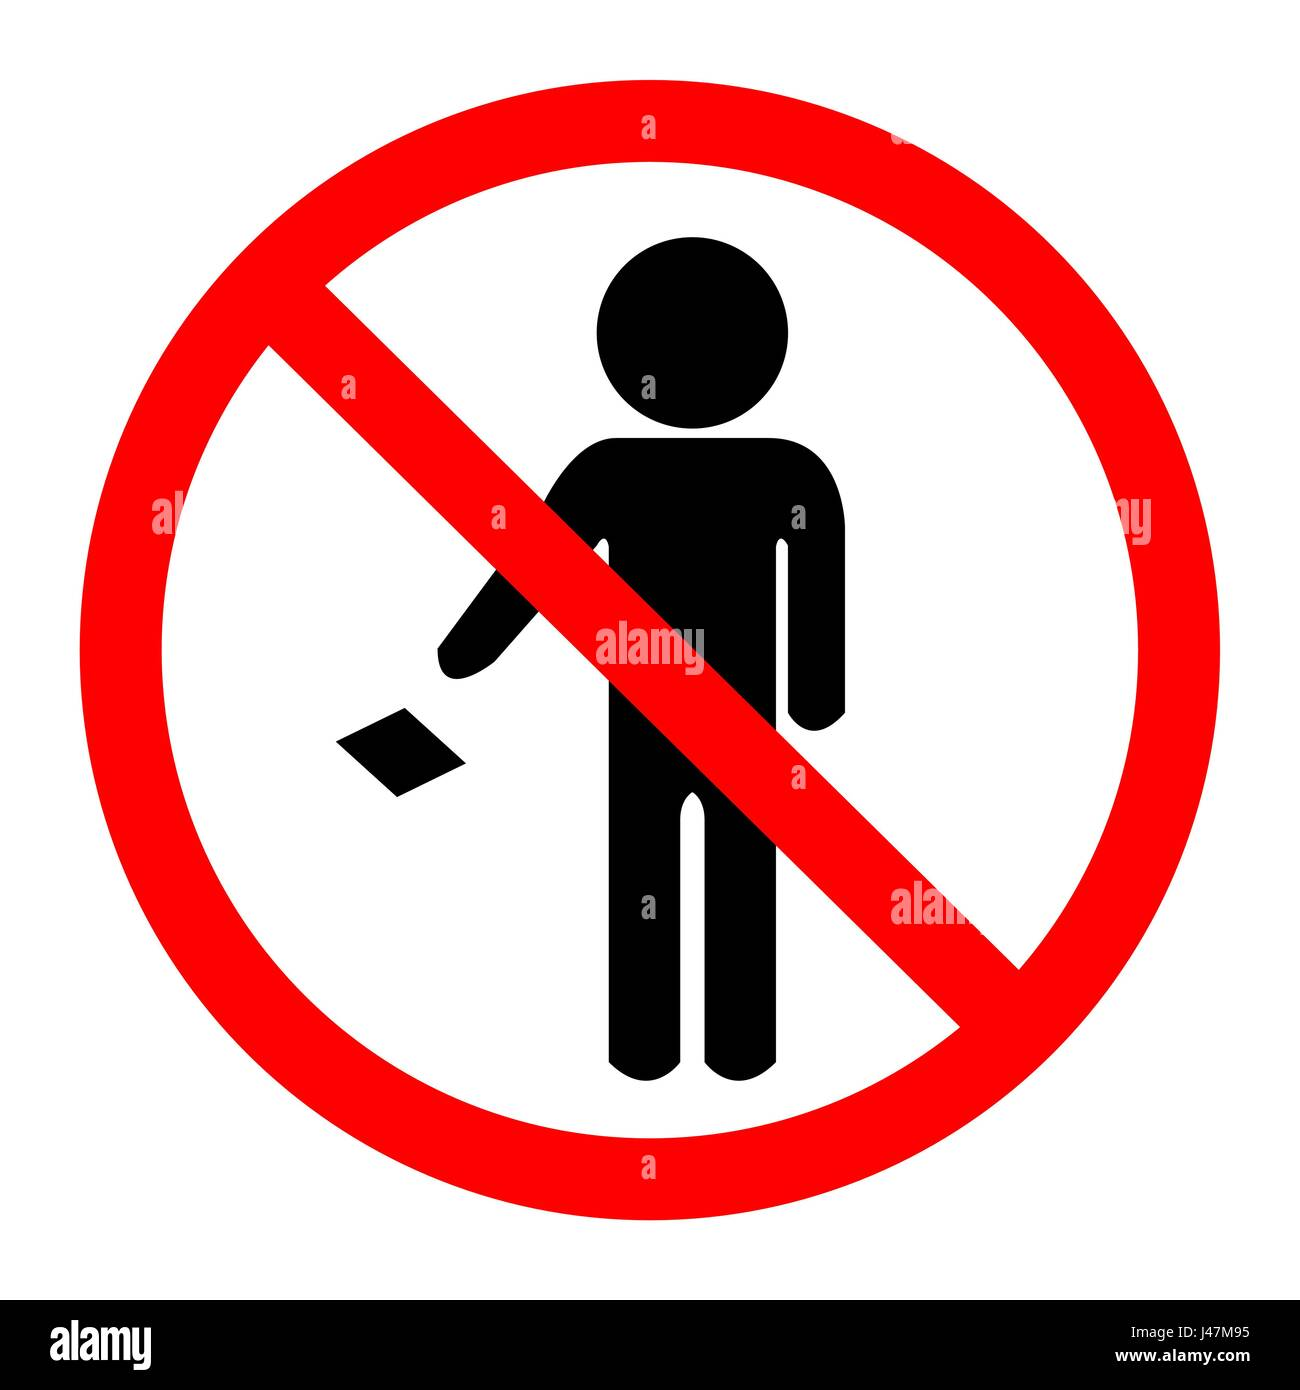 No Garbage On Floor : Do not leave your trash on the floor icon sign stock